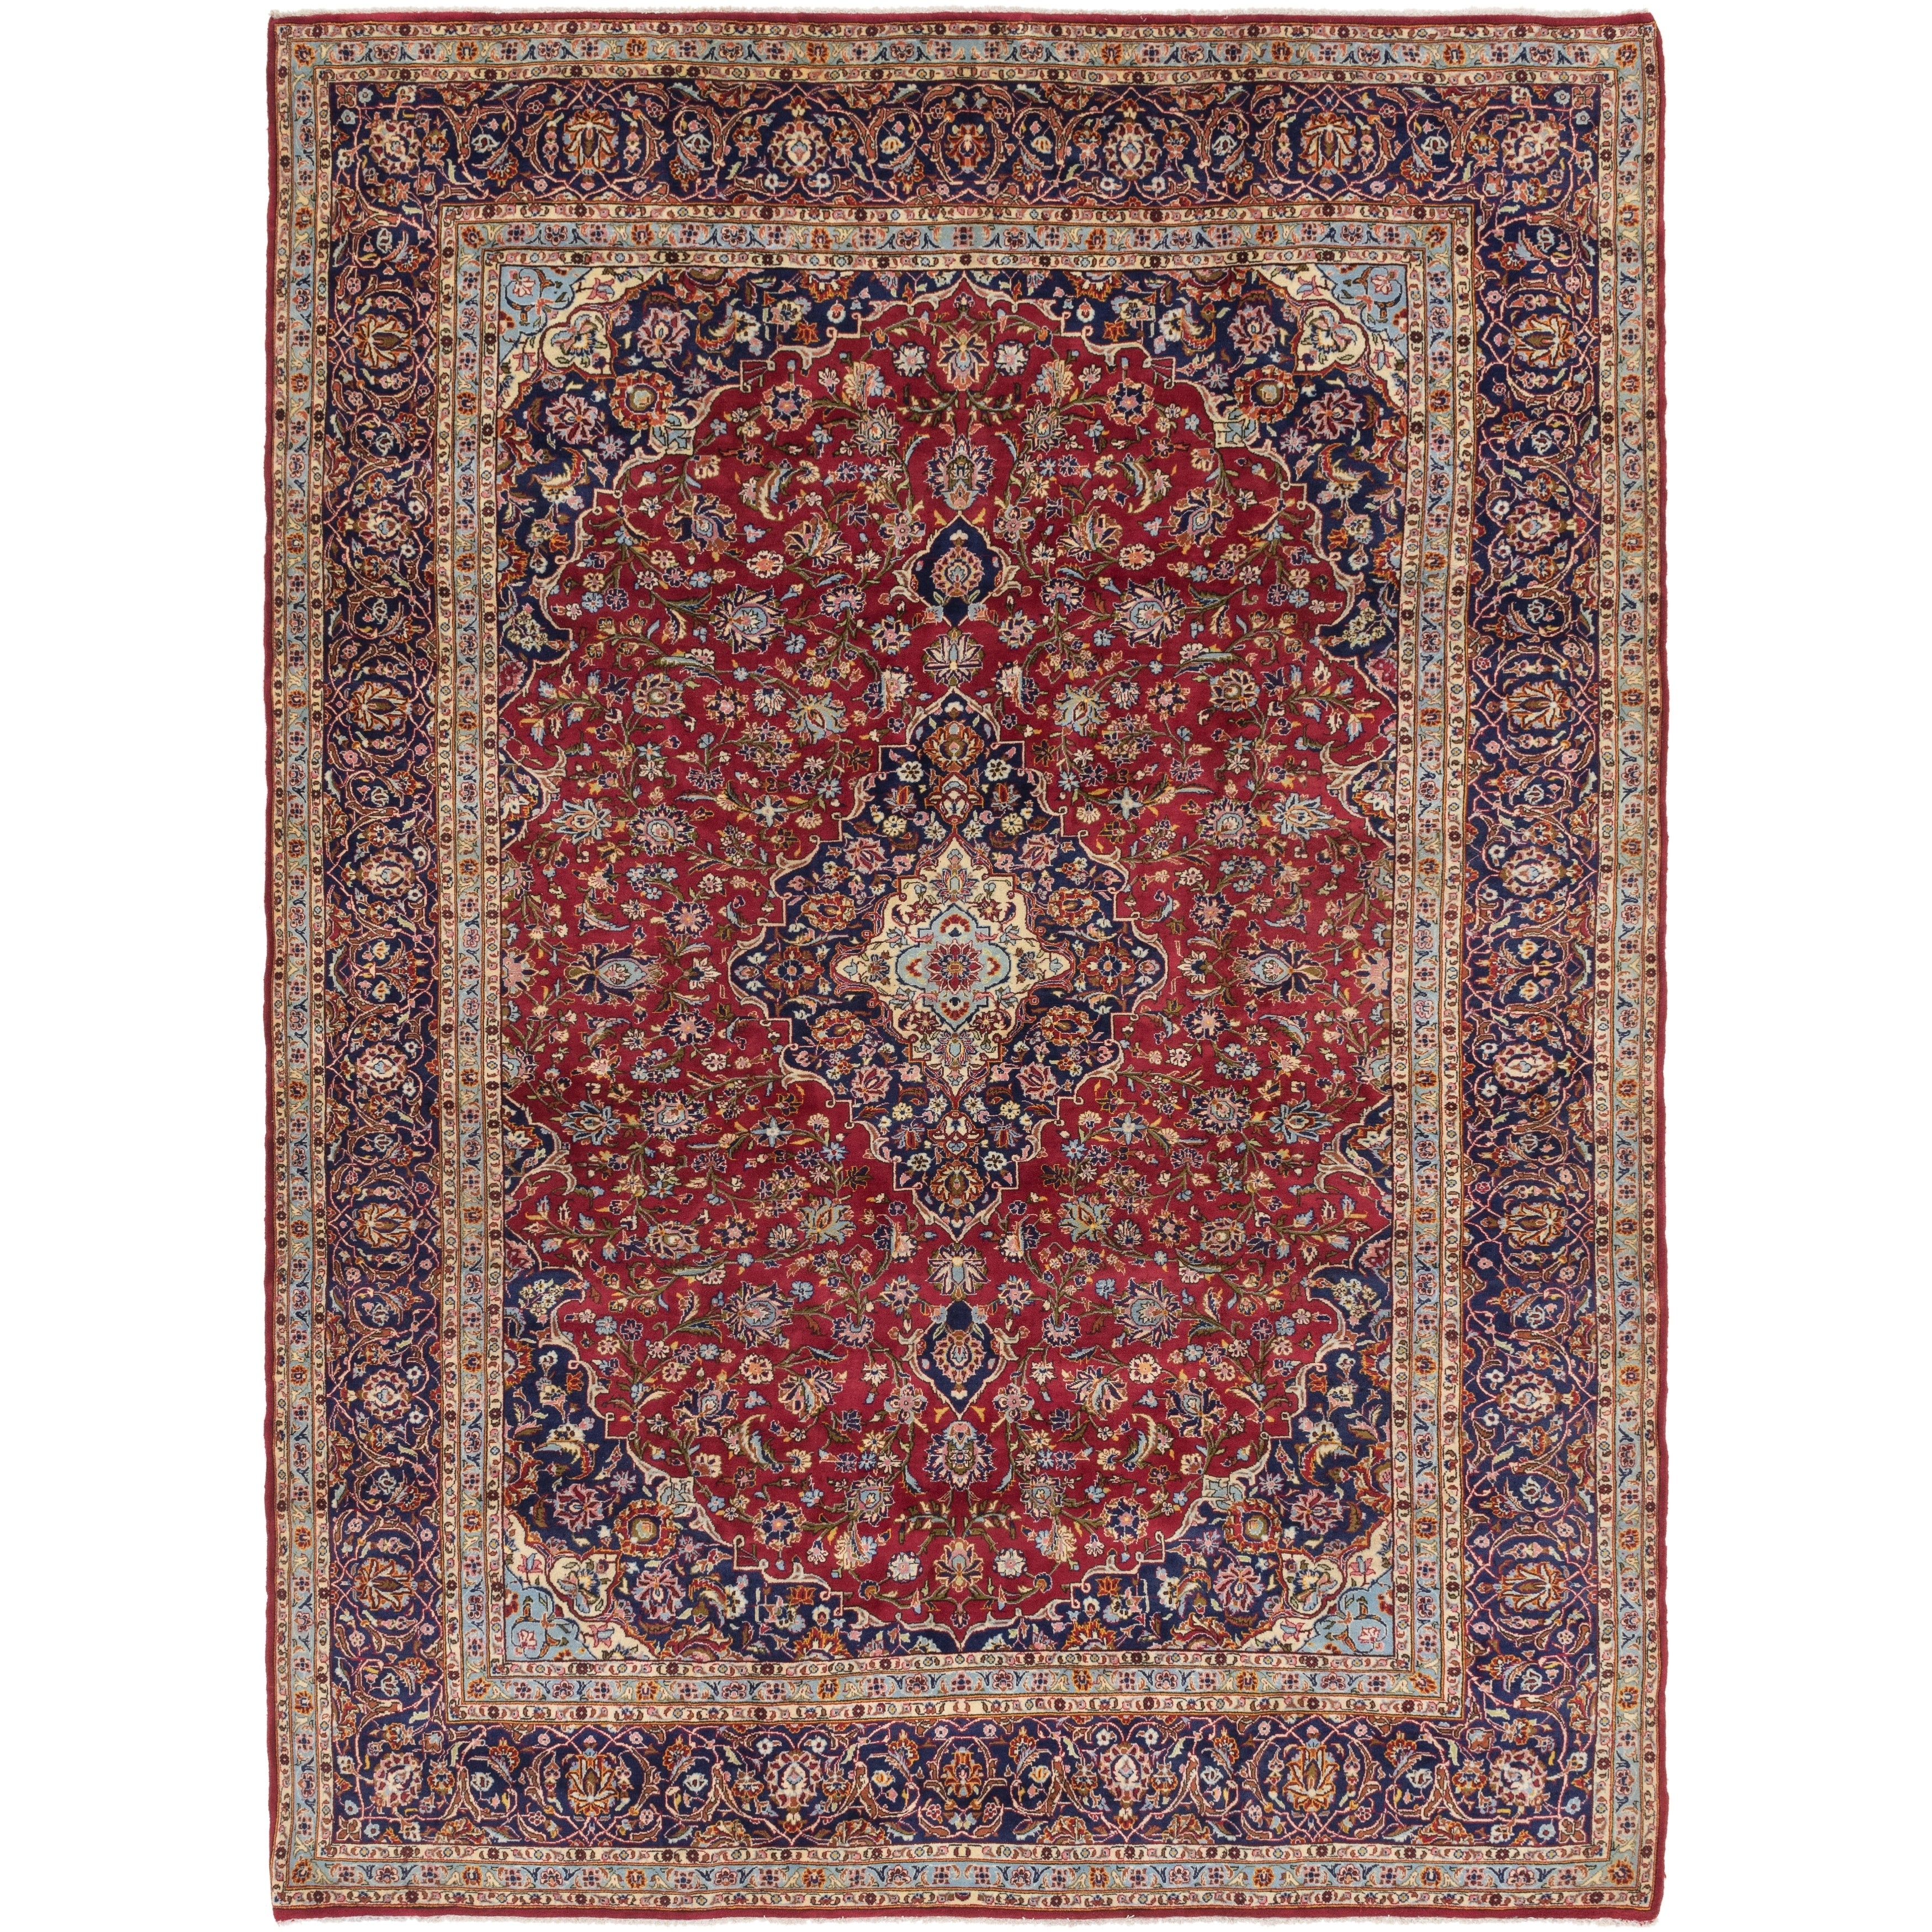 Hand Knotted Kashan Wool Area Rug - 10 x 13 10 (Red - 10 x 13 10)